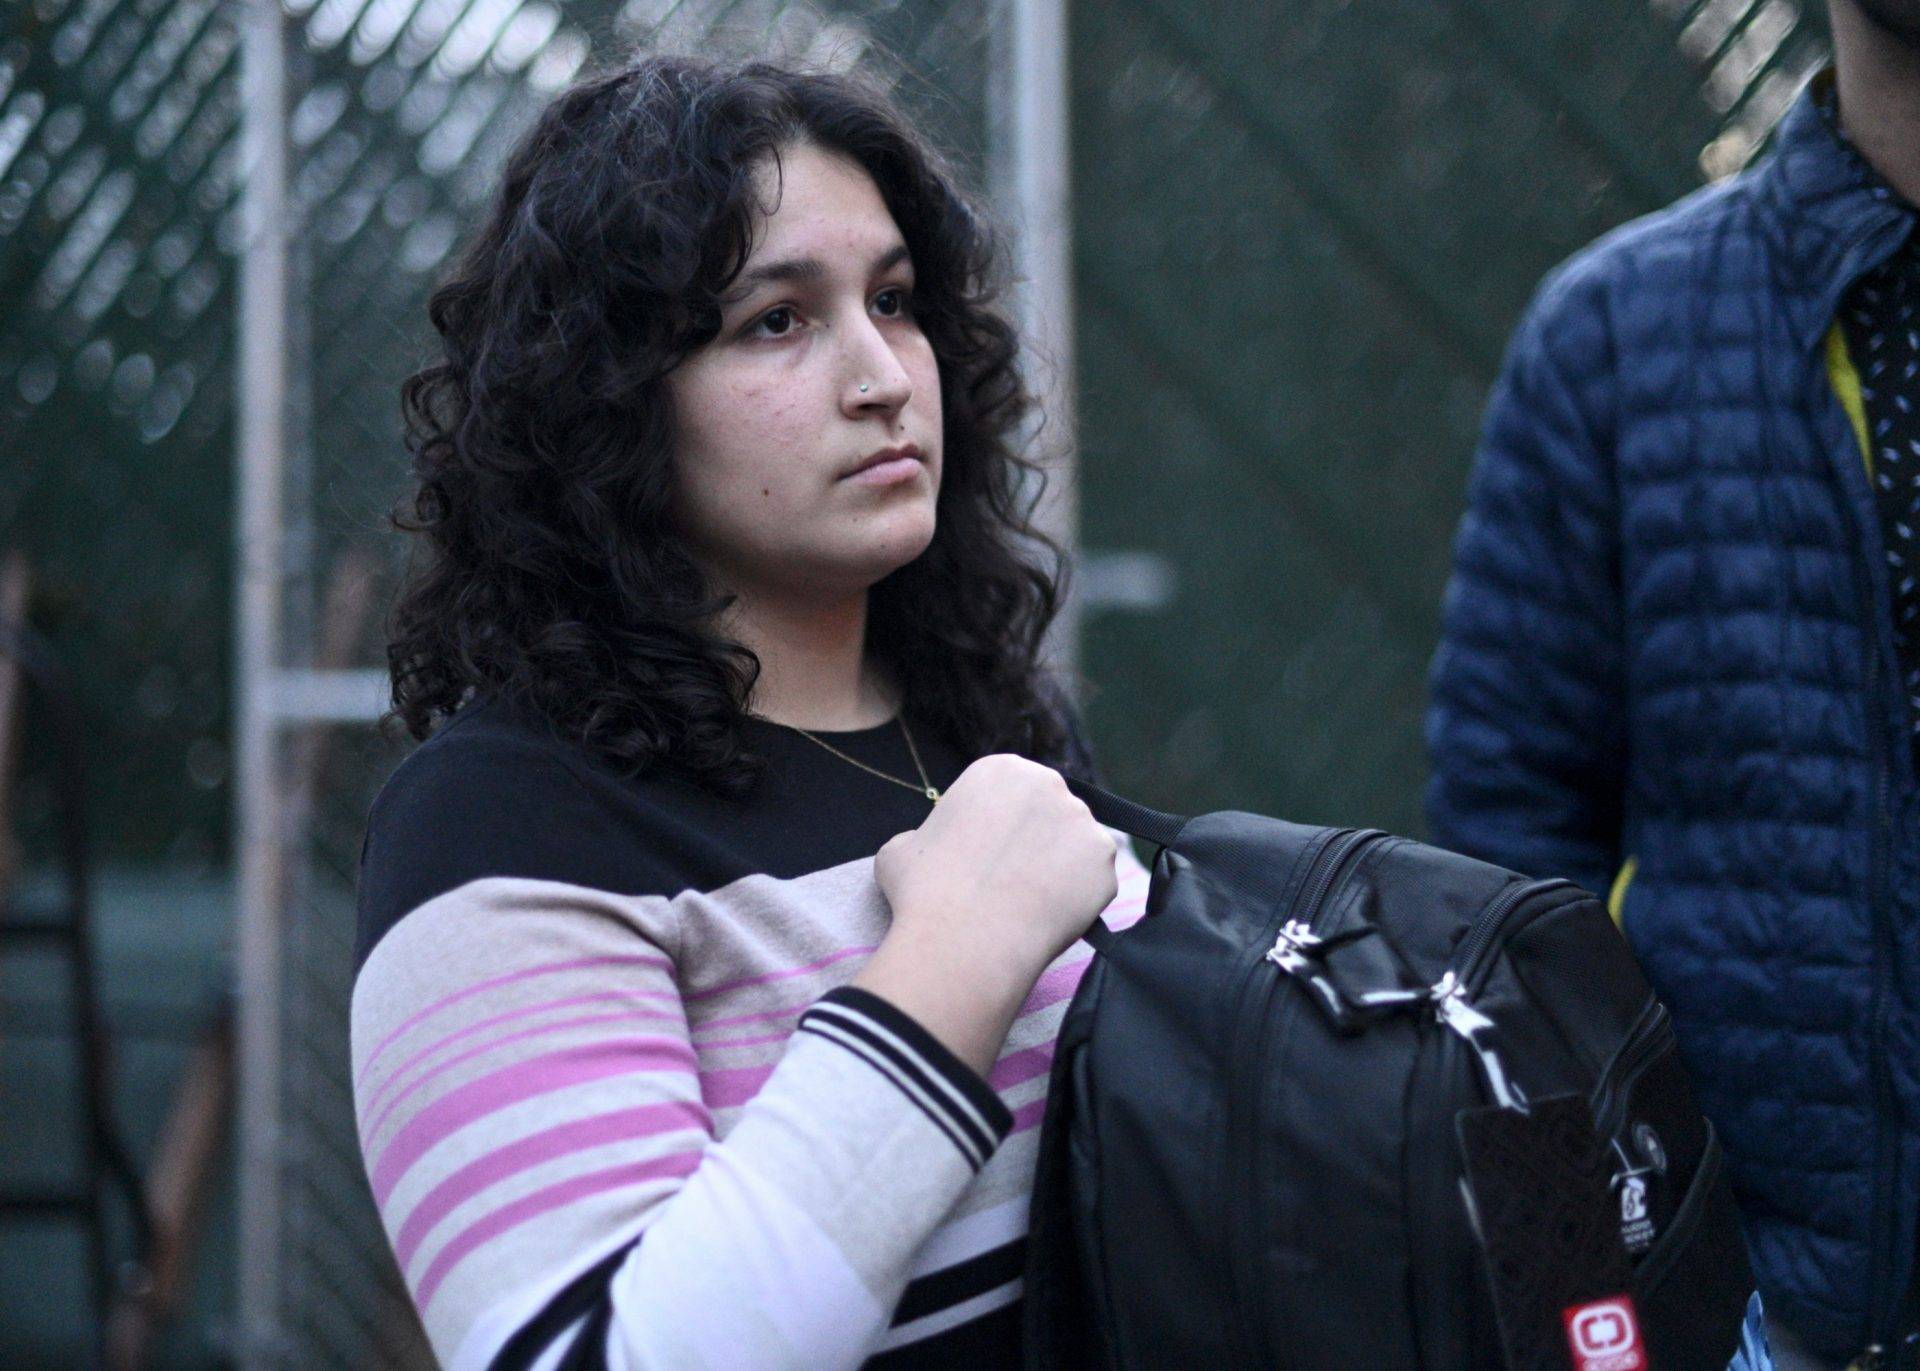 Activist and community organizer Puchi De Jesus holds up a backpack with emergency items to be donated as a disaster relief package, during a meeting of Philly Boricuas, on Saturday, in North Philadelphia.